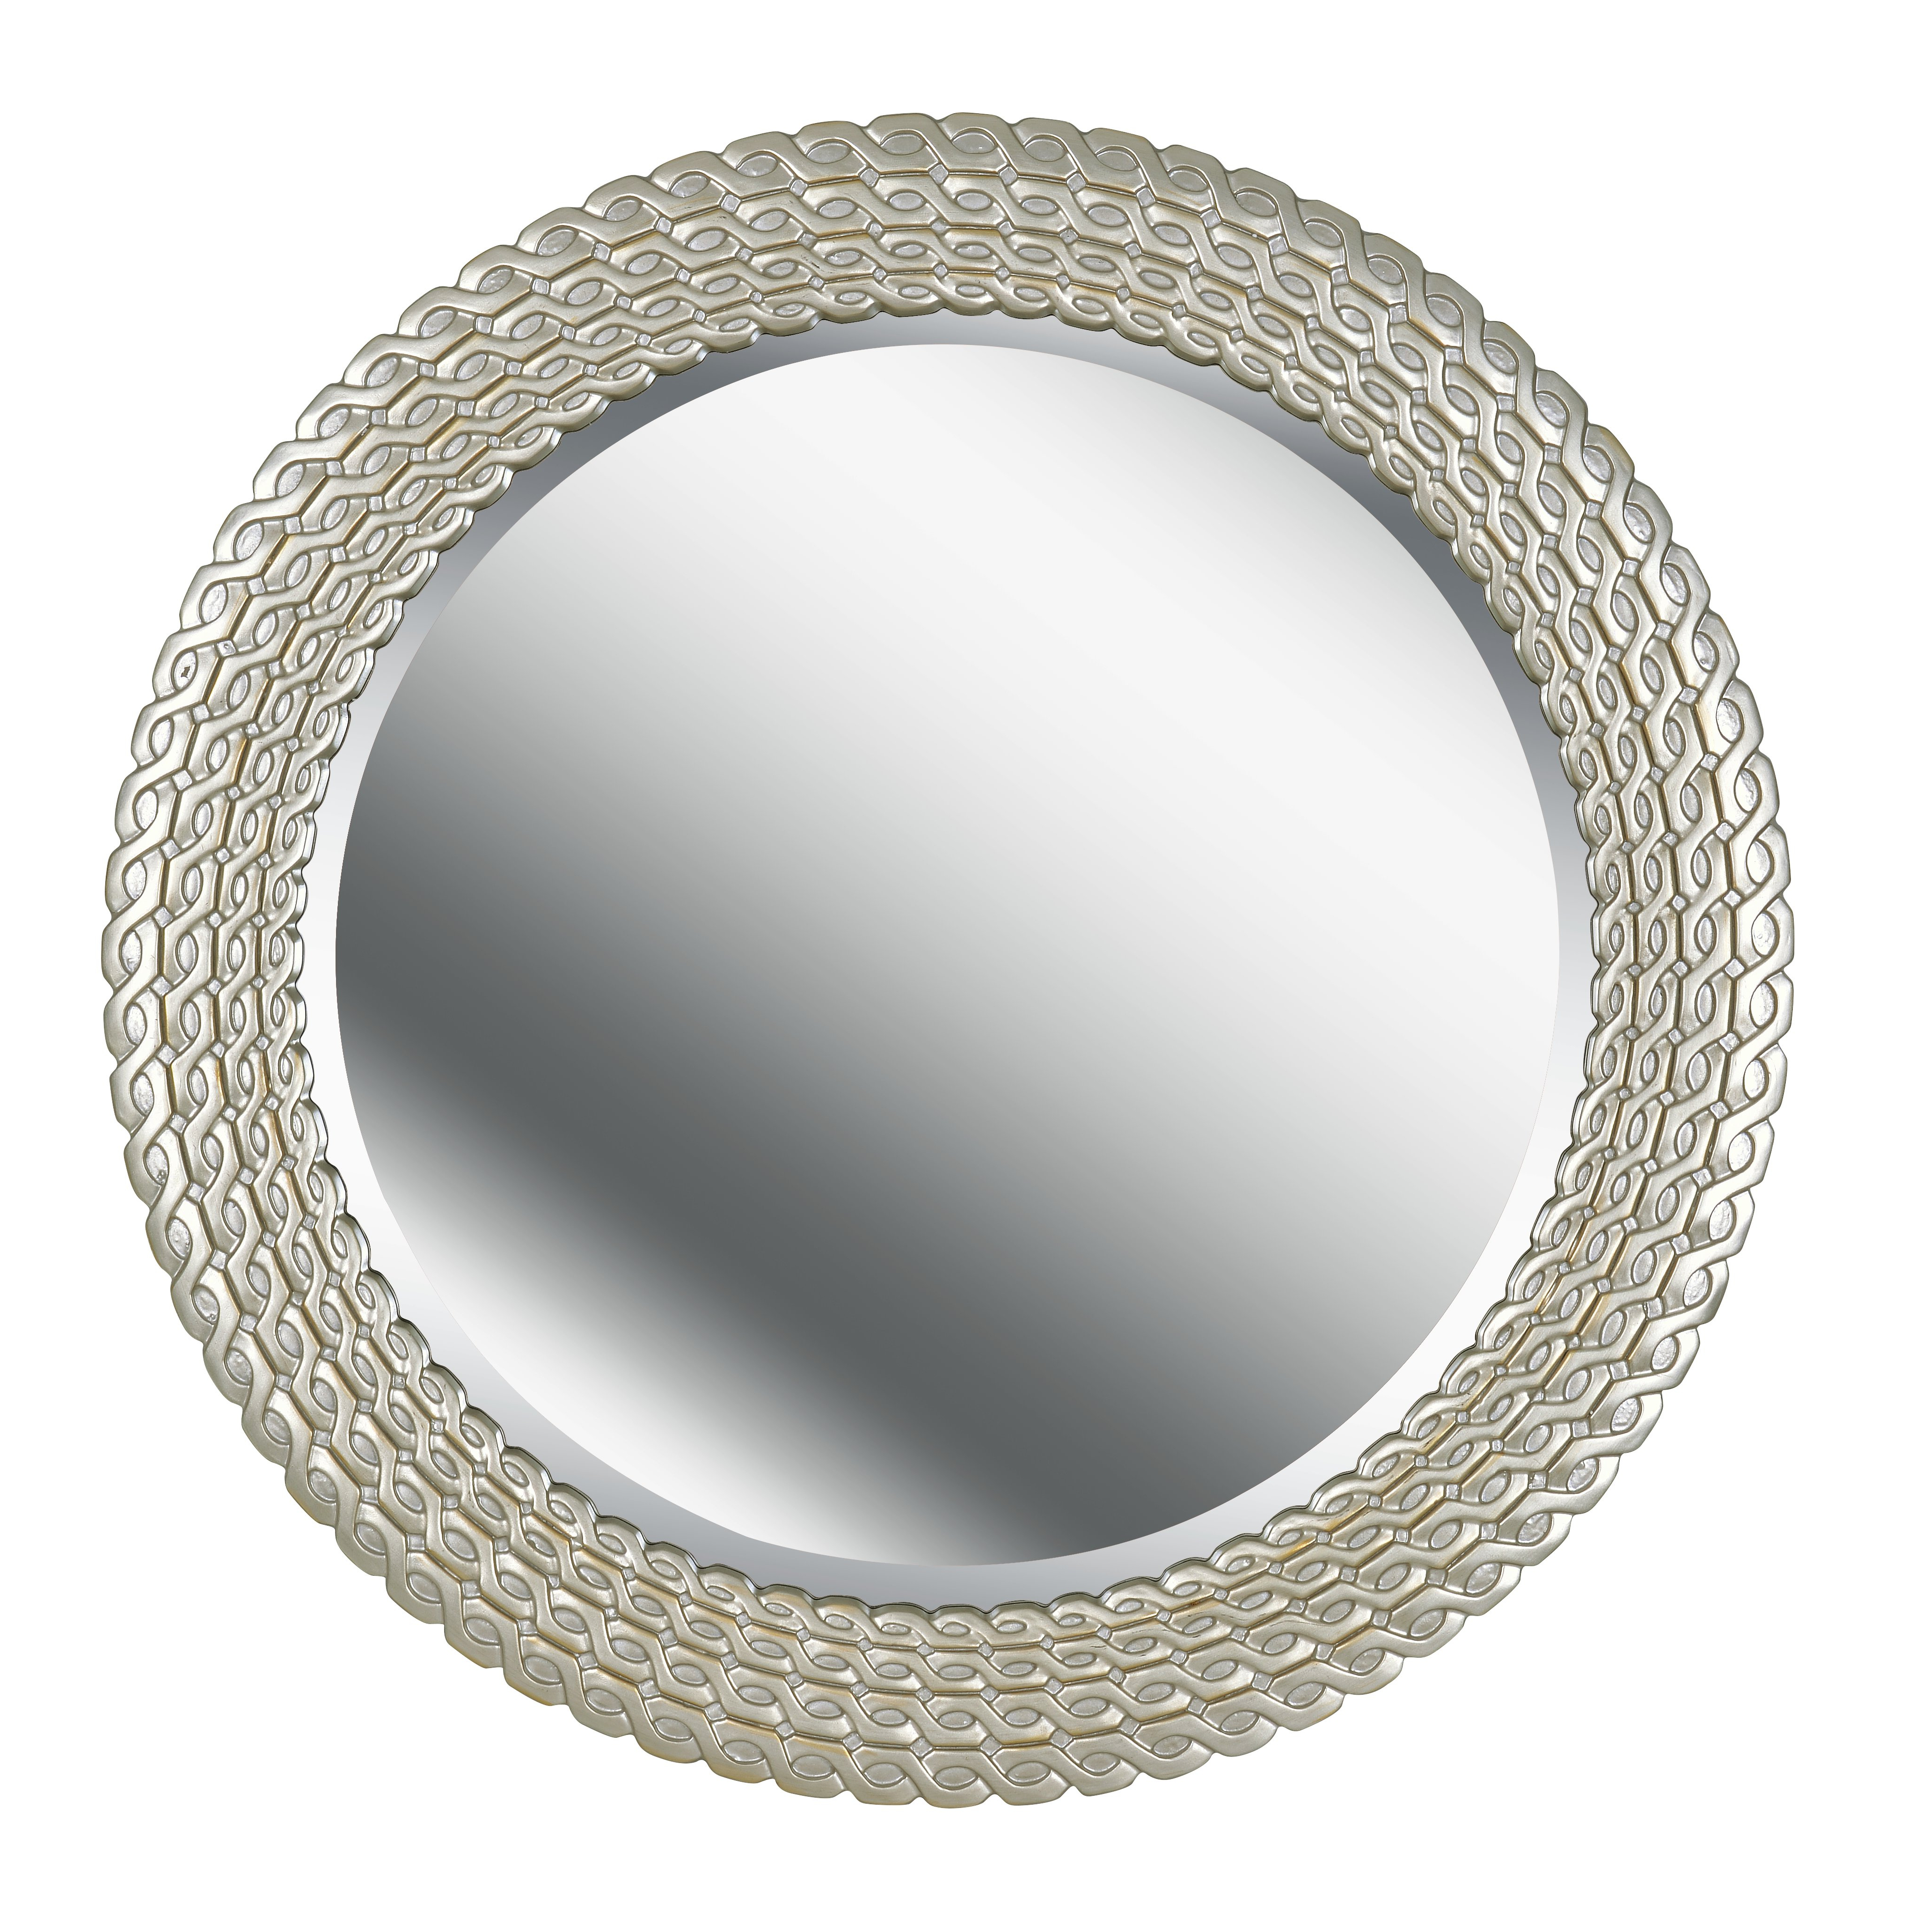 Most Popular Mcnary Accent Mirrors For Bracelet Traditional Accent Mirror (View 12 of 20)